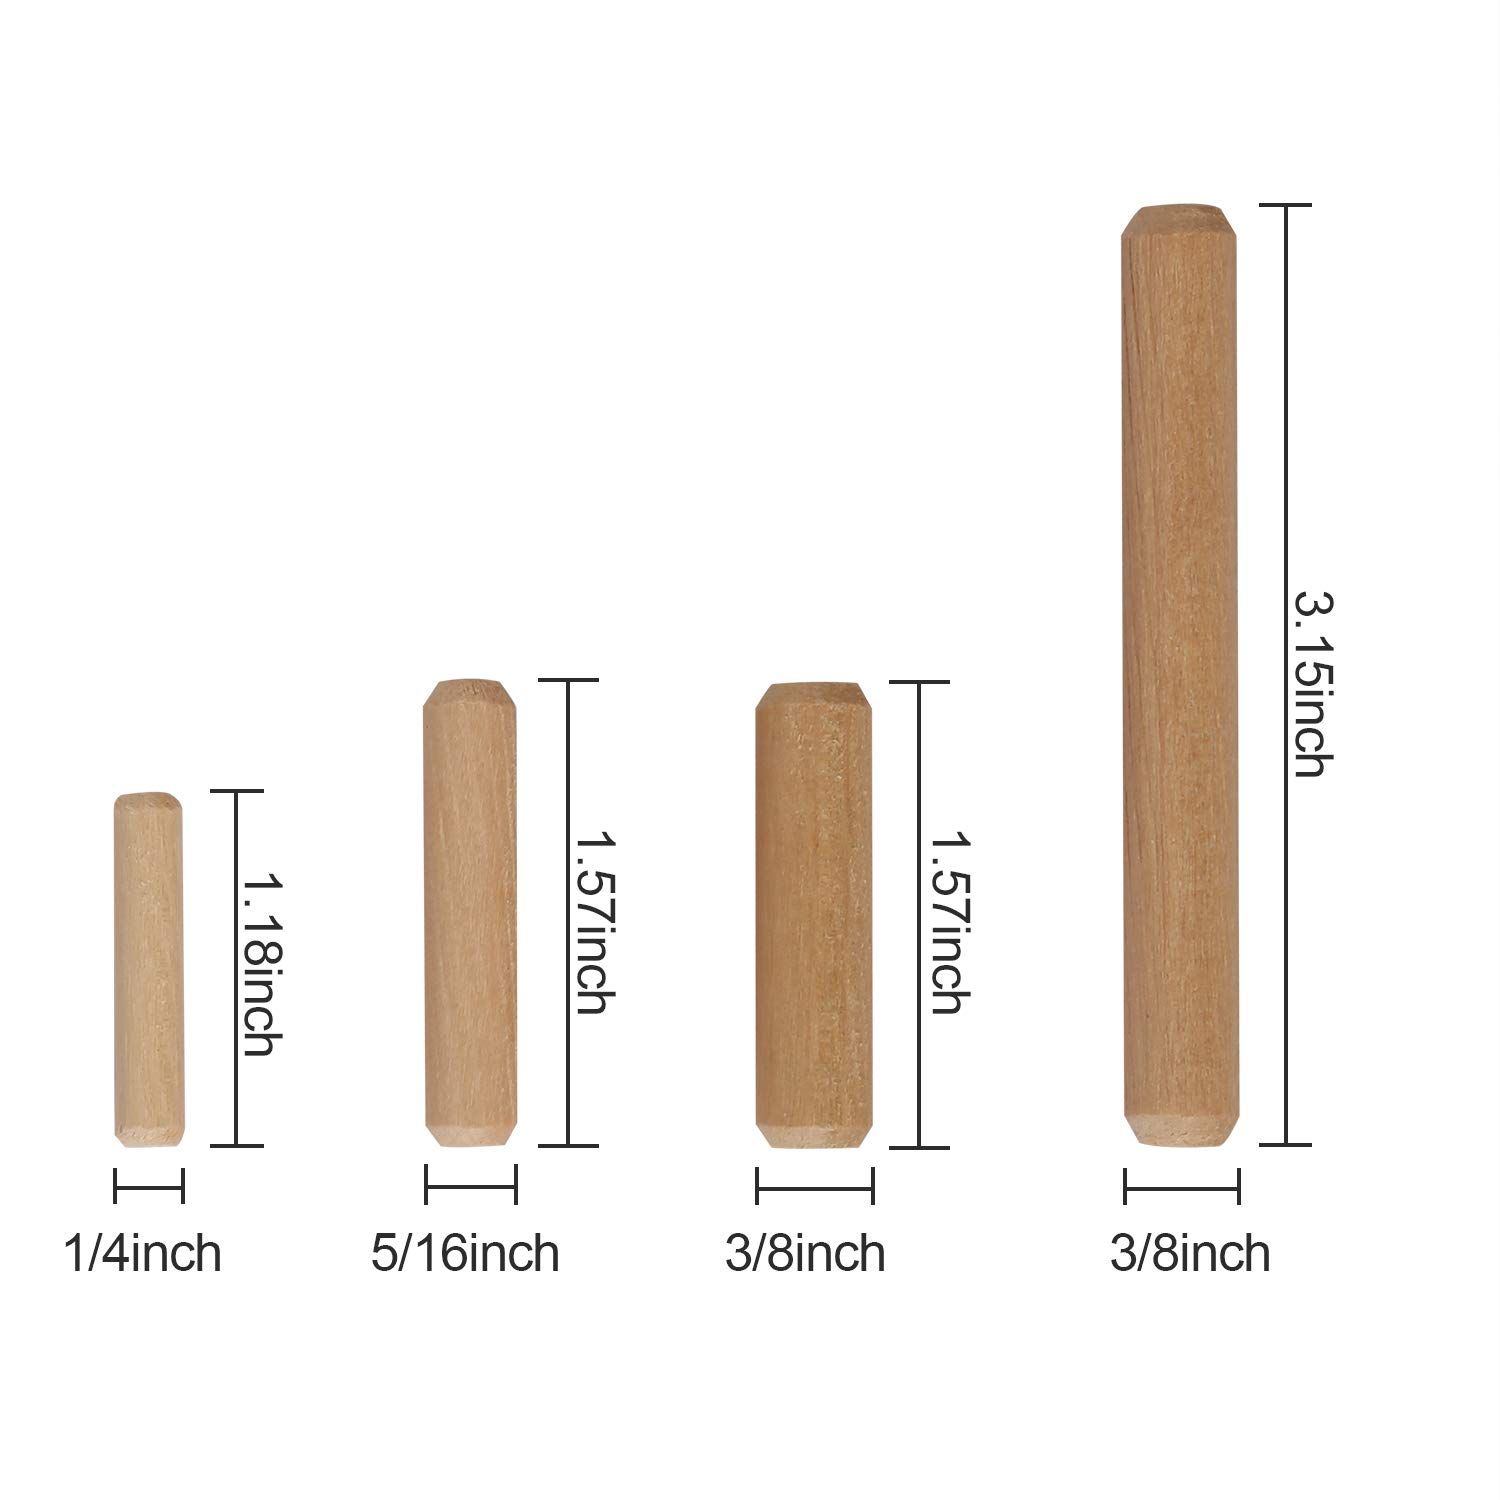 3//8 Inch 6mm 8mm 10mm Diameter Wooden/Dowel/Pins KEILEOHO 1000 PCS 1//4 Sturdy and Durable Fluted Dowel/Pins Upgraded Dowel Pins for Furniture Connection or Repair Model Building 5//16